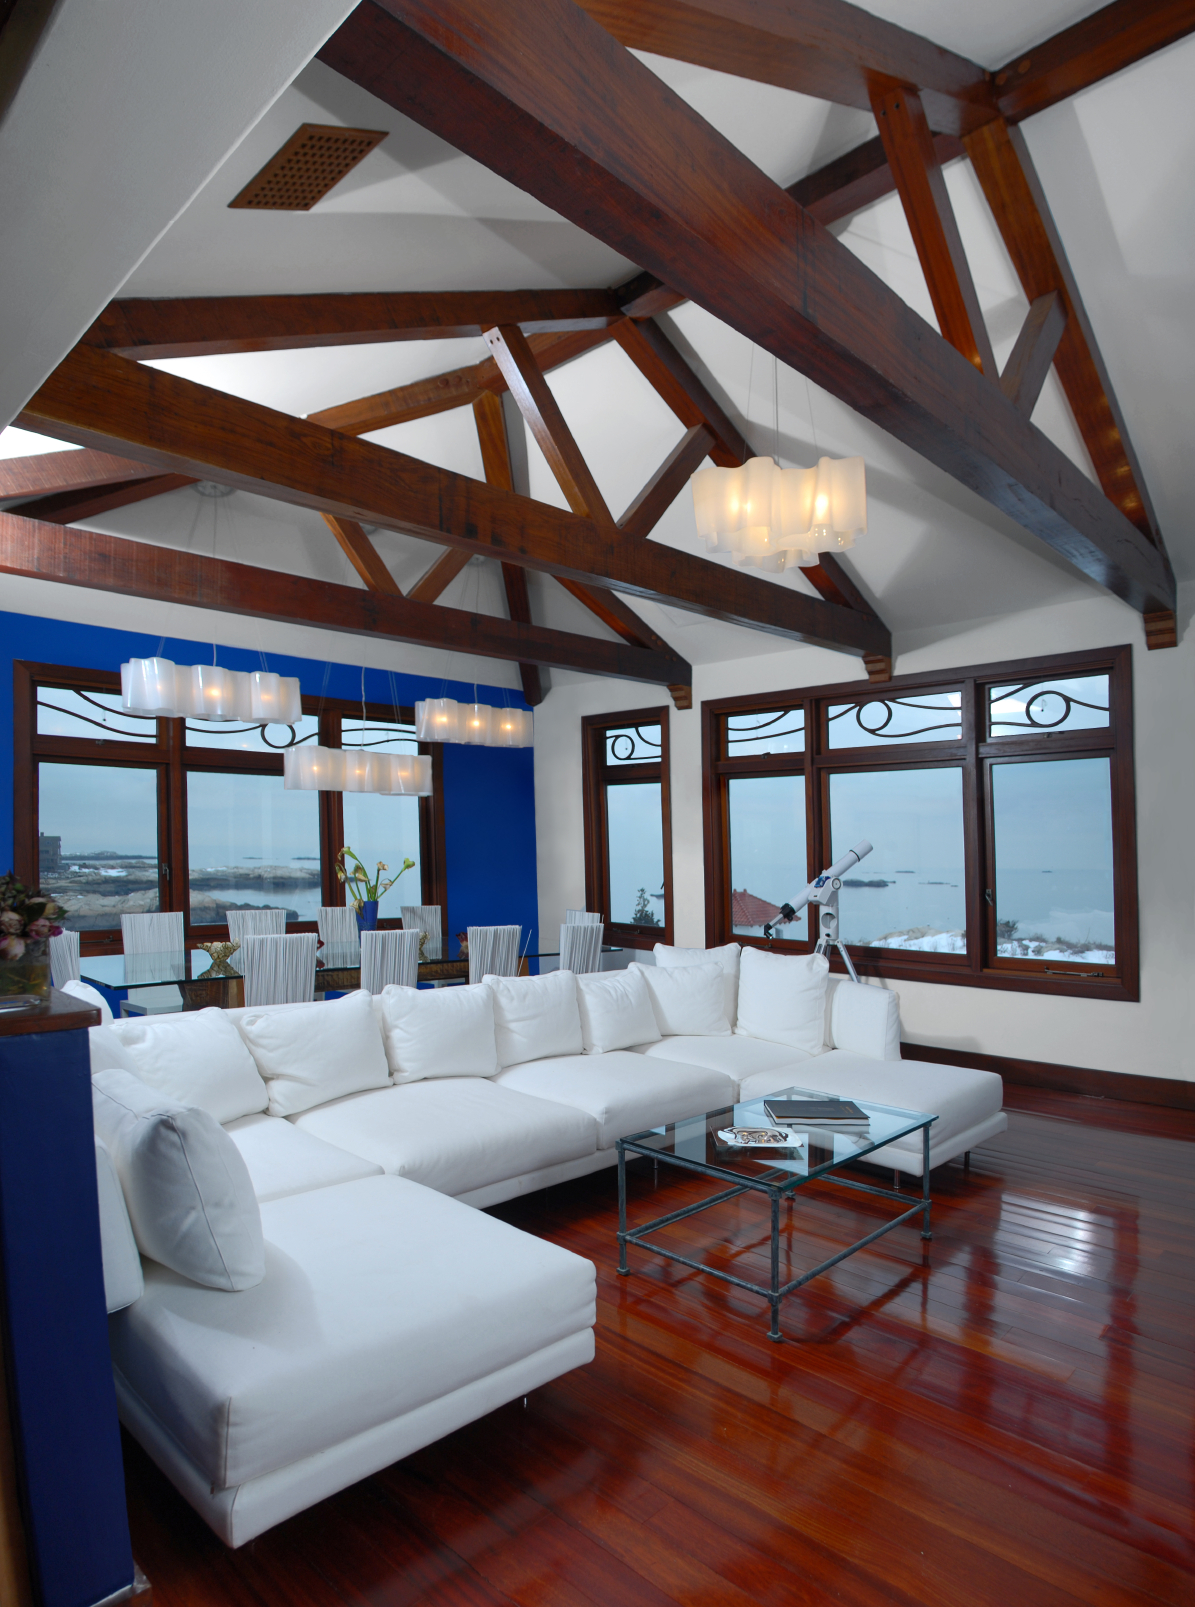 Down Ceiling Designs For Drawing Room: Exposed Ceiling Beams Ideas